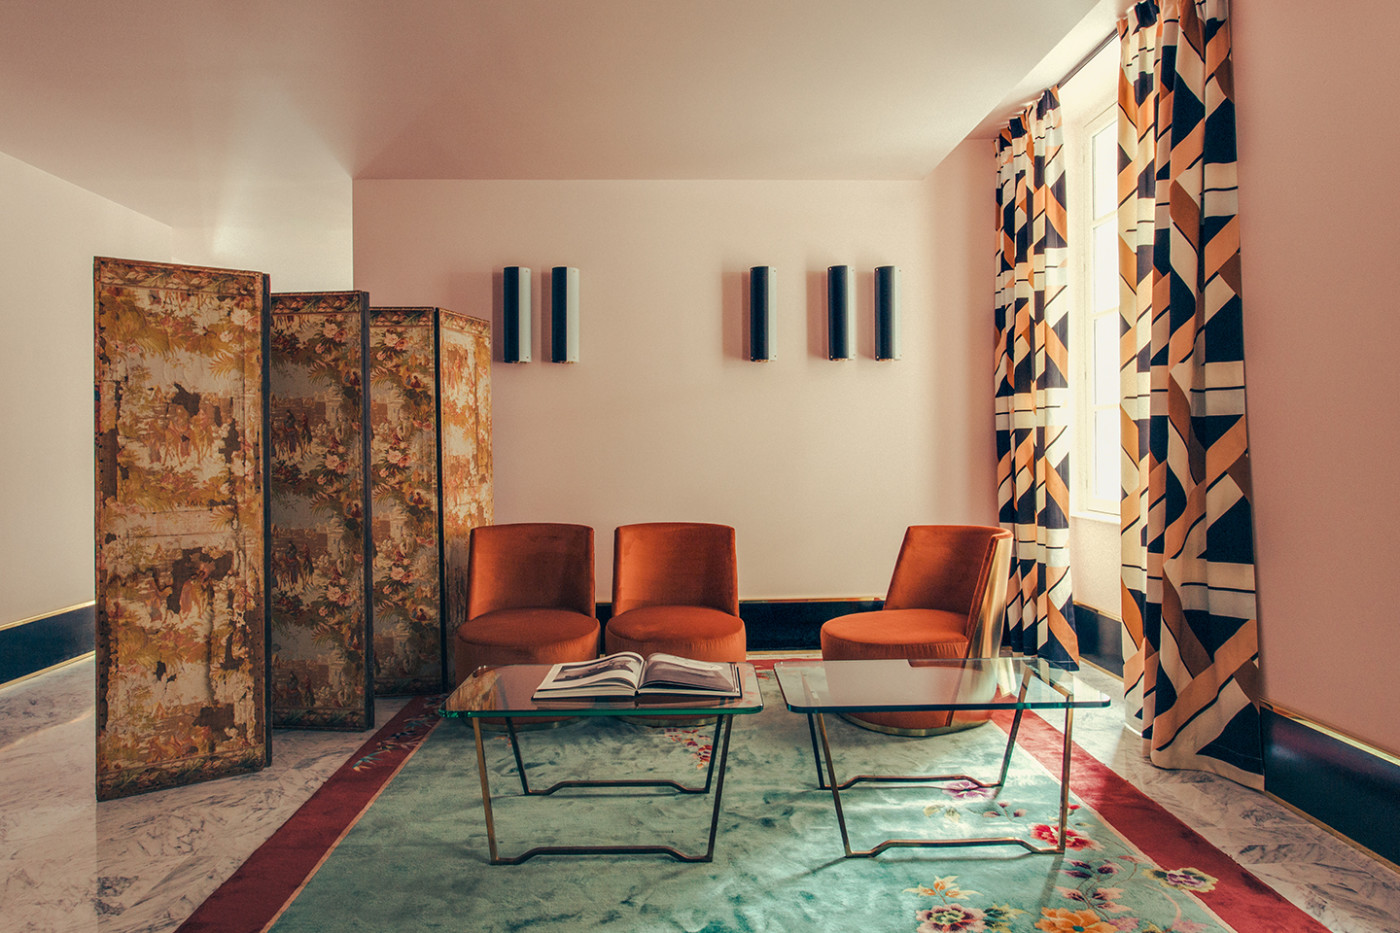 Interiors: Dimore Studio for Hotel Saint Marc, Paris. Photo: Philippe Servent